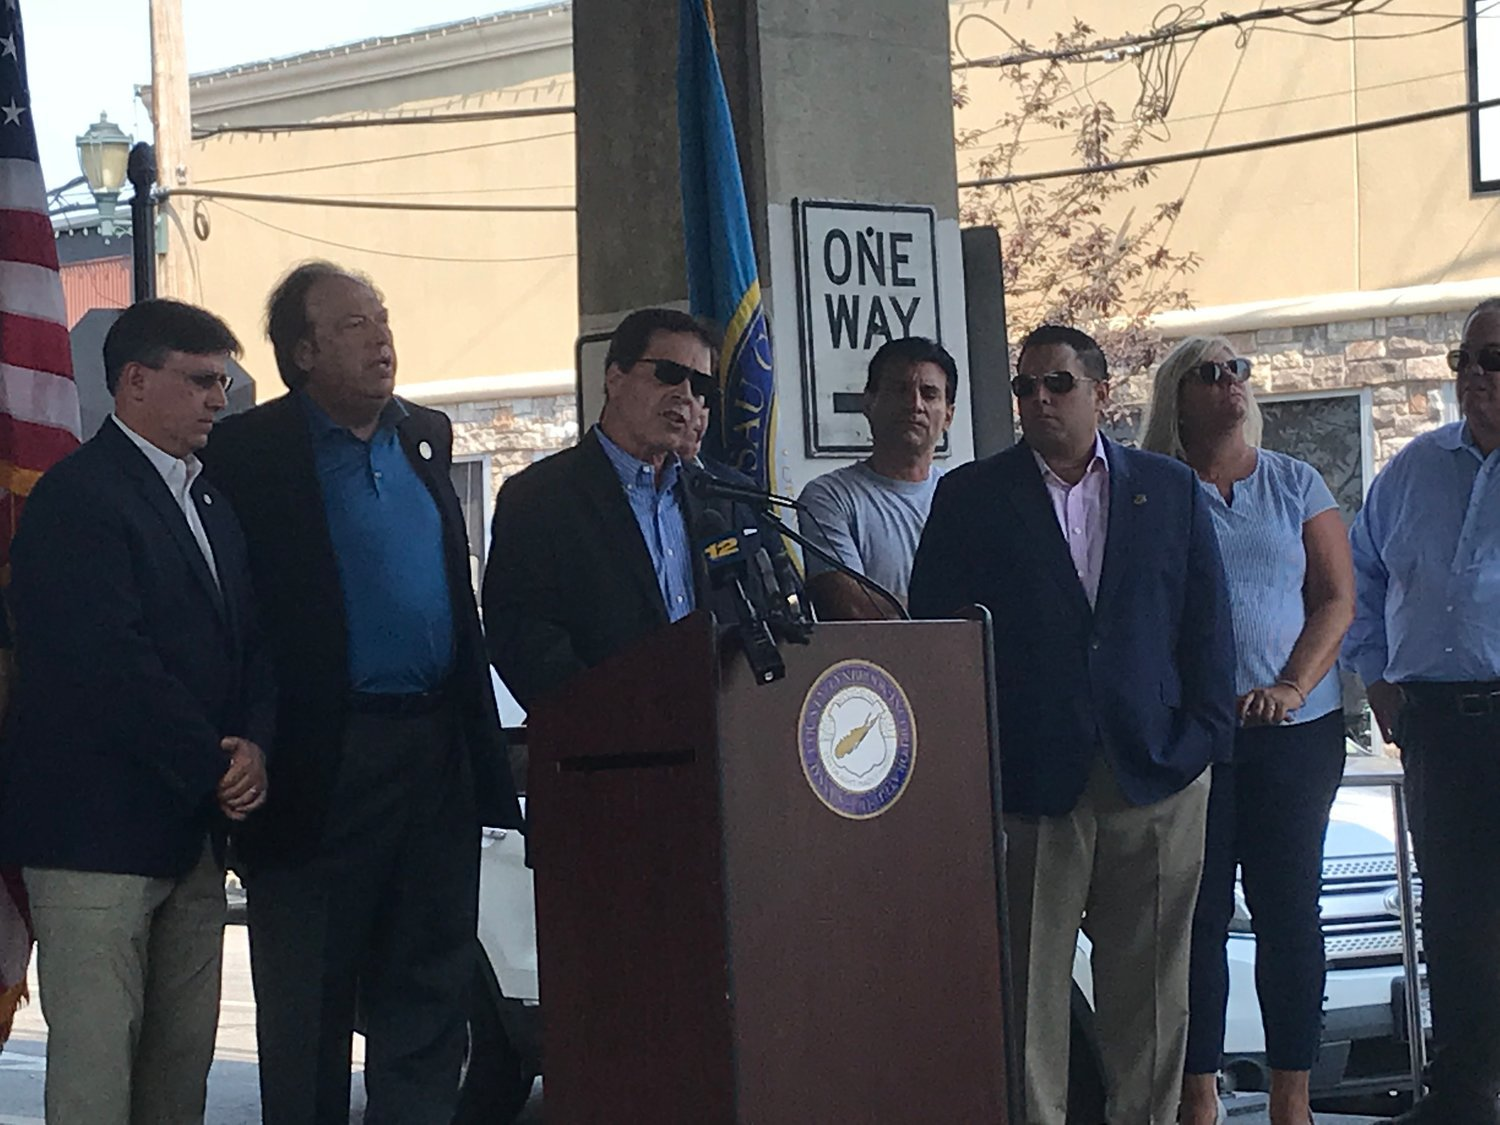 Two months after a rally against National Grid's gas moratorium in Lynbrook, hosted by Mayor Alan Beach and the village board, Gov. Andrew Cuomo asked the utility to restore service to more than 1,100 customers, but the moratorium has continued.